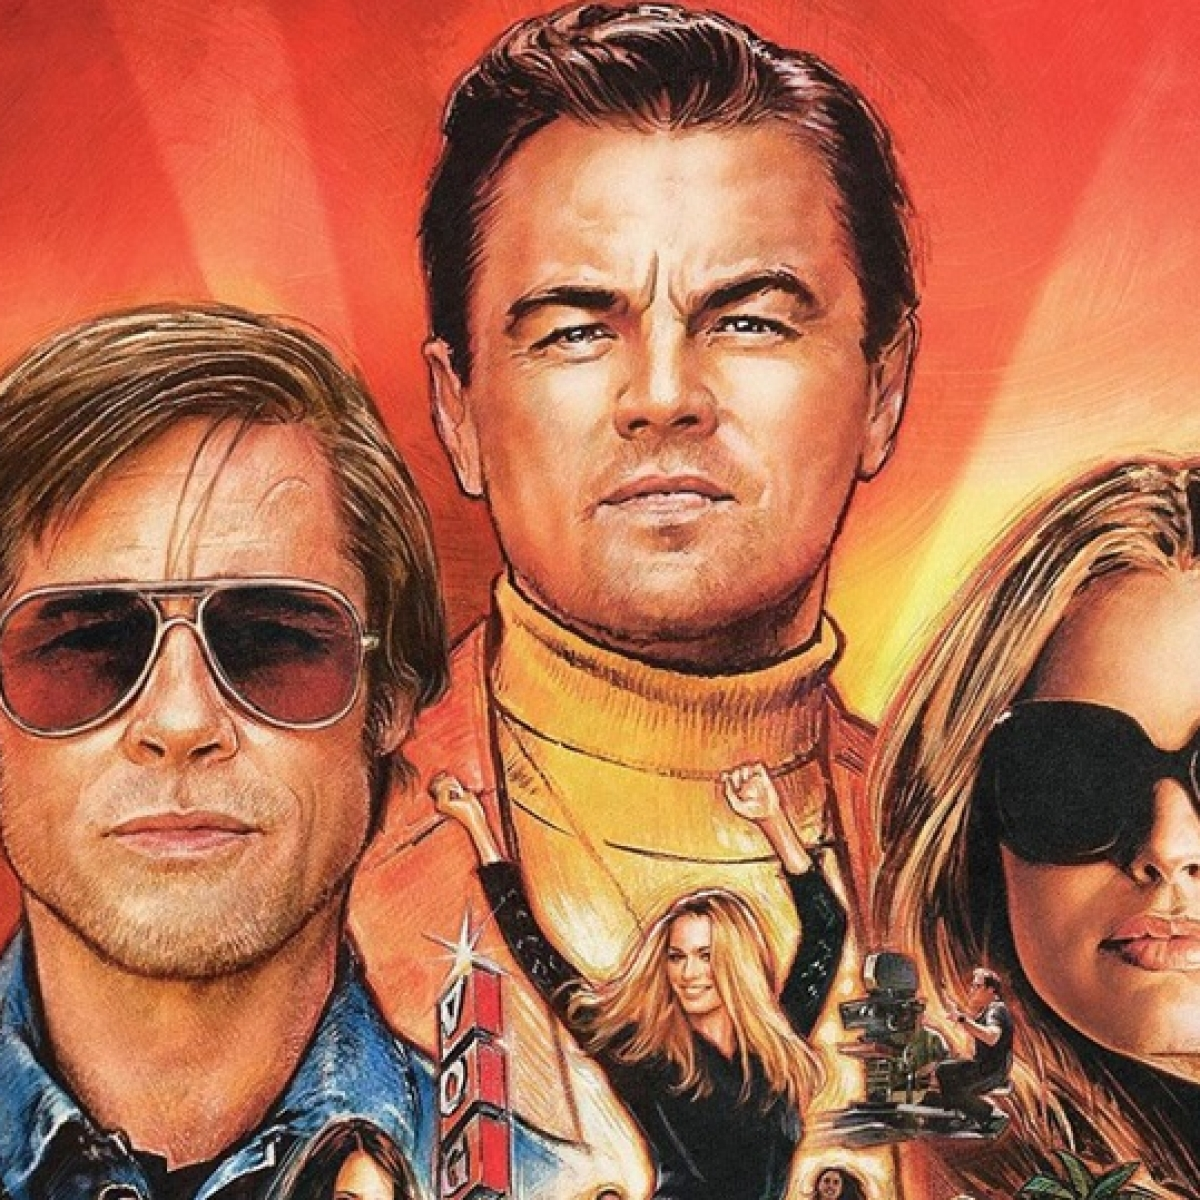 'Once Upon a Time in Hollywood' to re-release in India on February 14